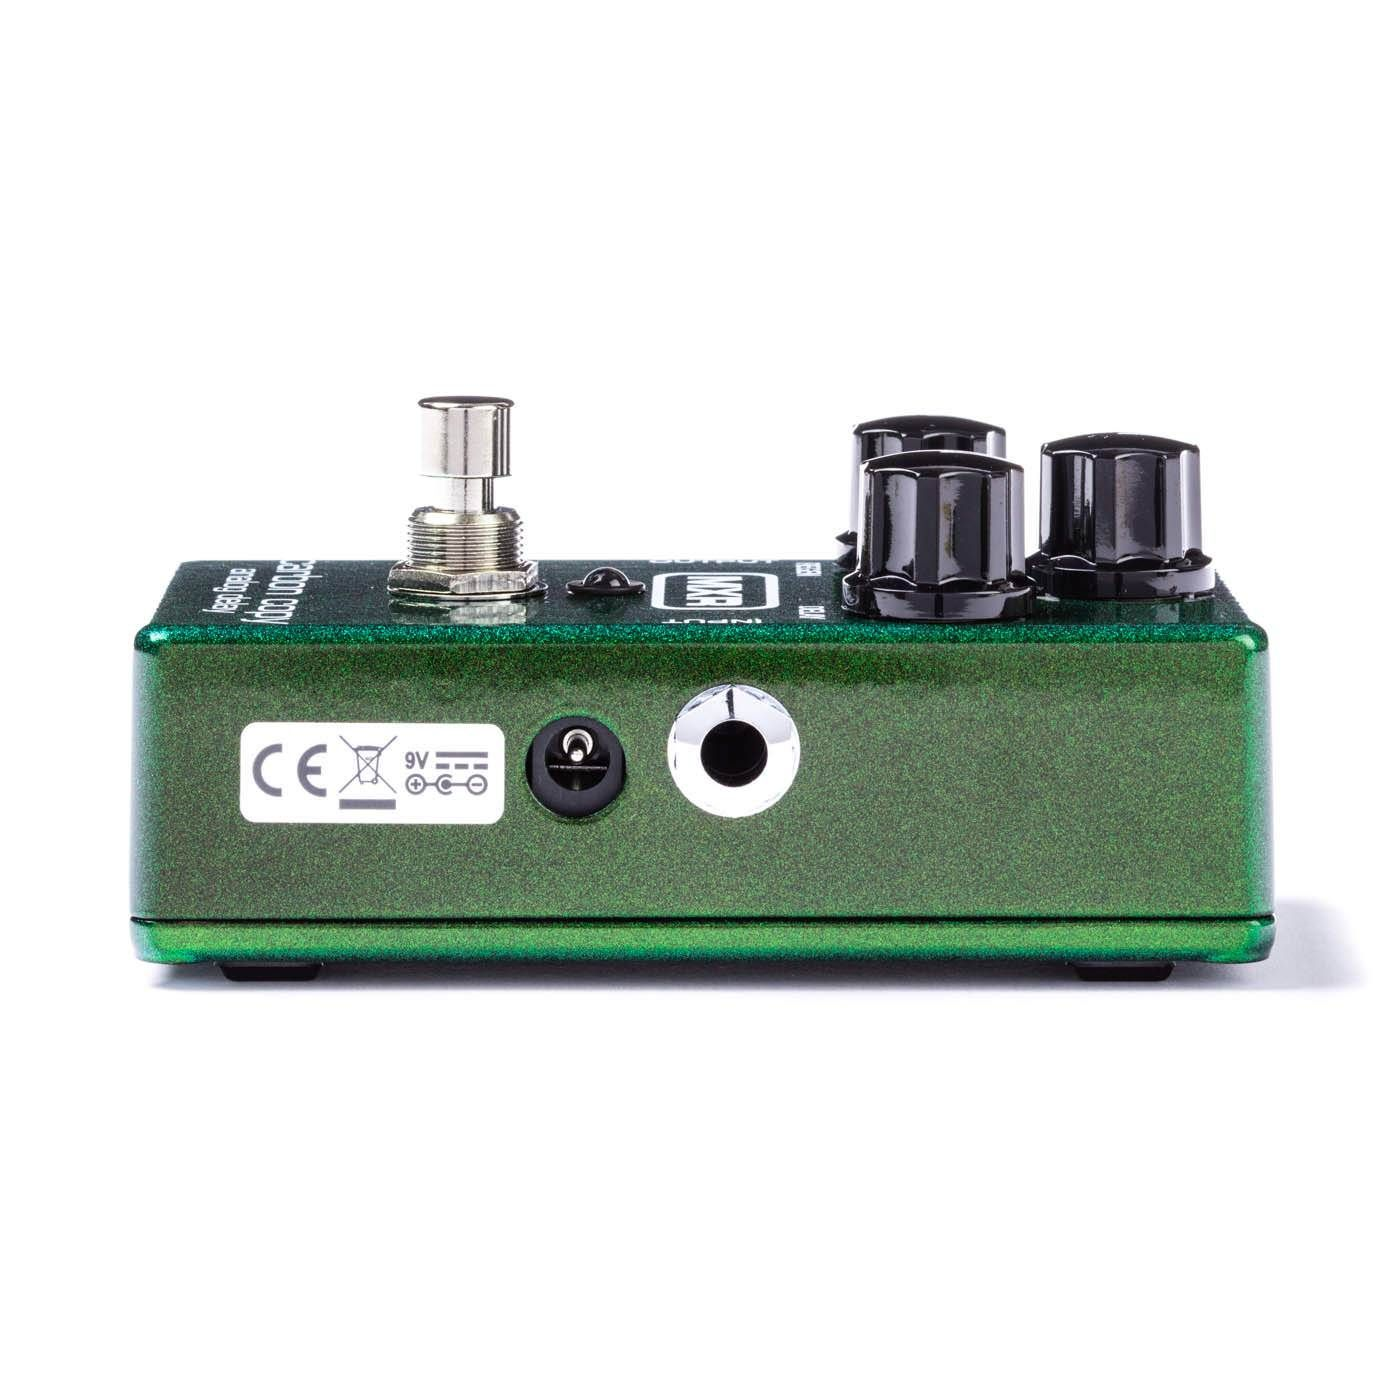 Mxr M169 Pedal Carbon Copy Delay Pinterest Mooer Micro Preamp 006 Classic Deluxe Based On Fender Blues Go From Crisp Bathroom Slap Echoes To Epic Gilmouresque Delays With The